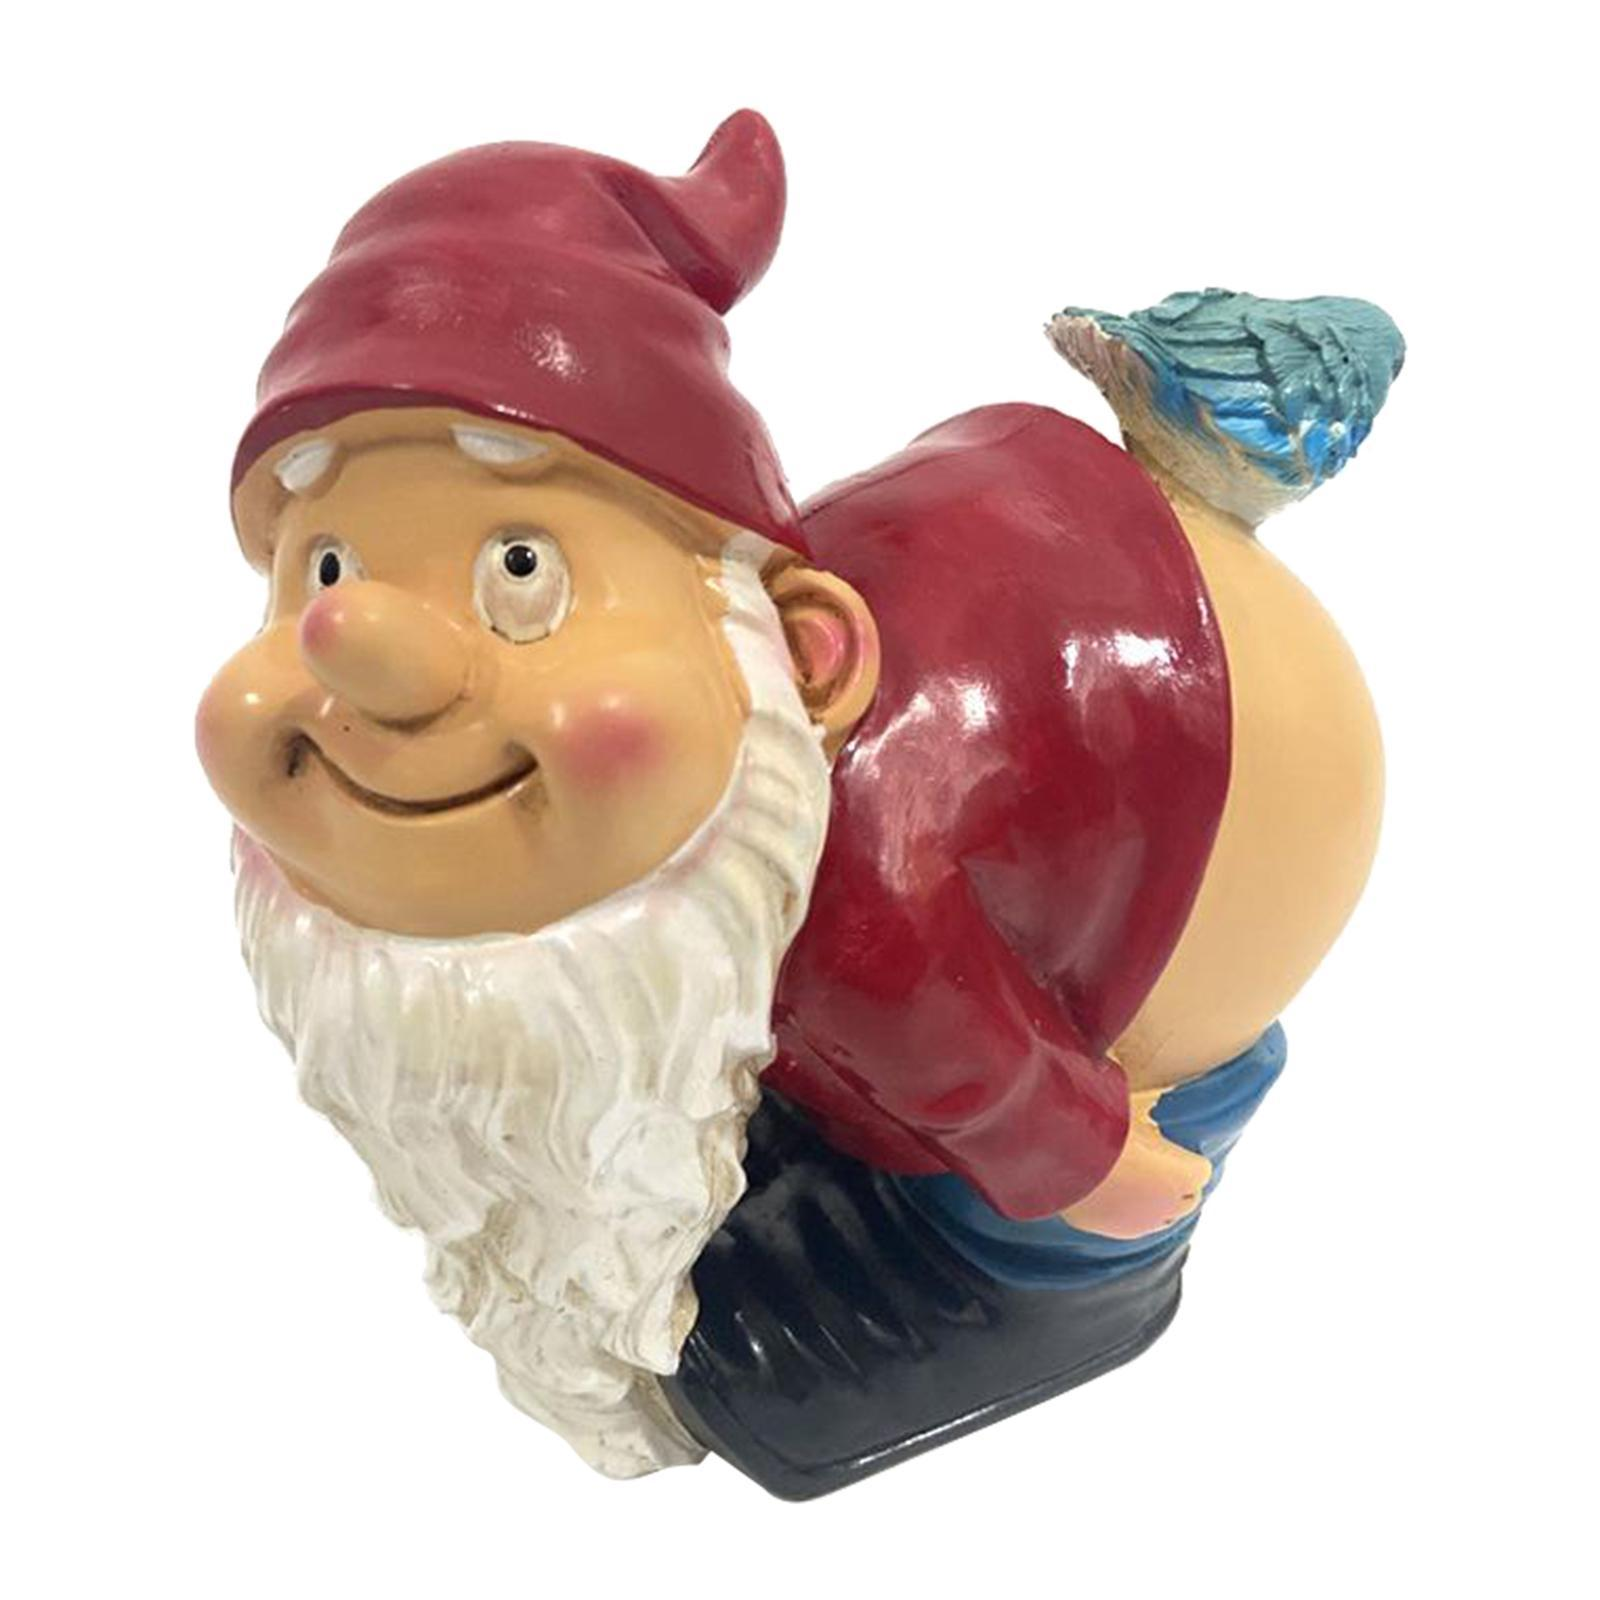 thumbnail 19 - Funny Garden Gnome Statue Figurines Christmas Dress Up DIY for Indoor Outdoor